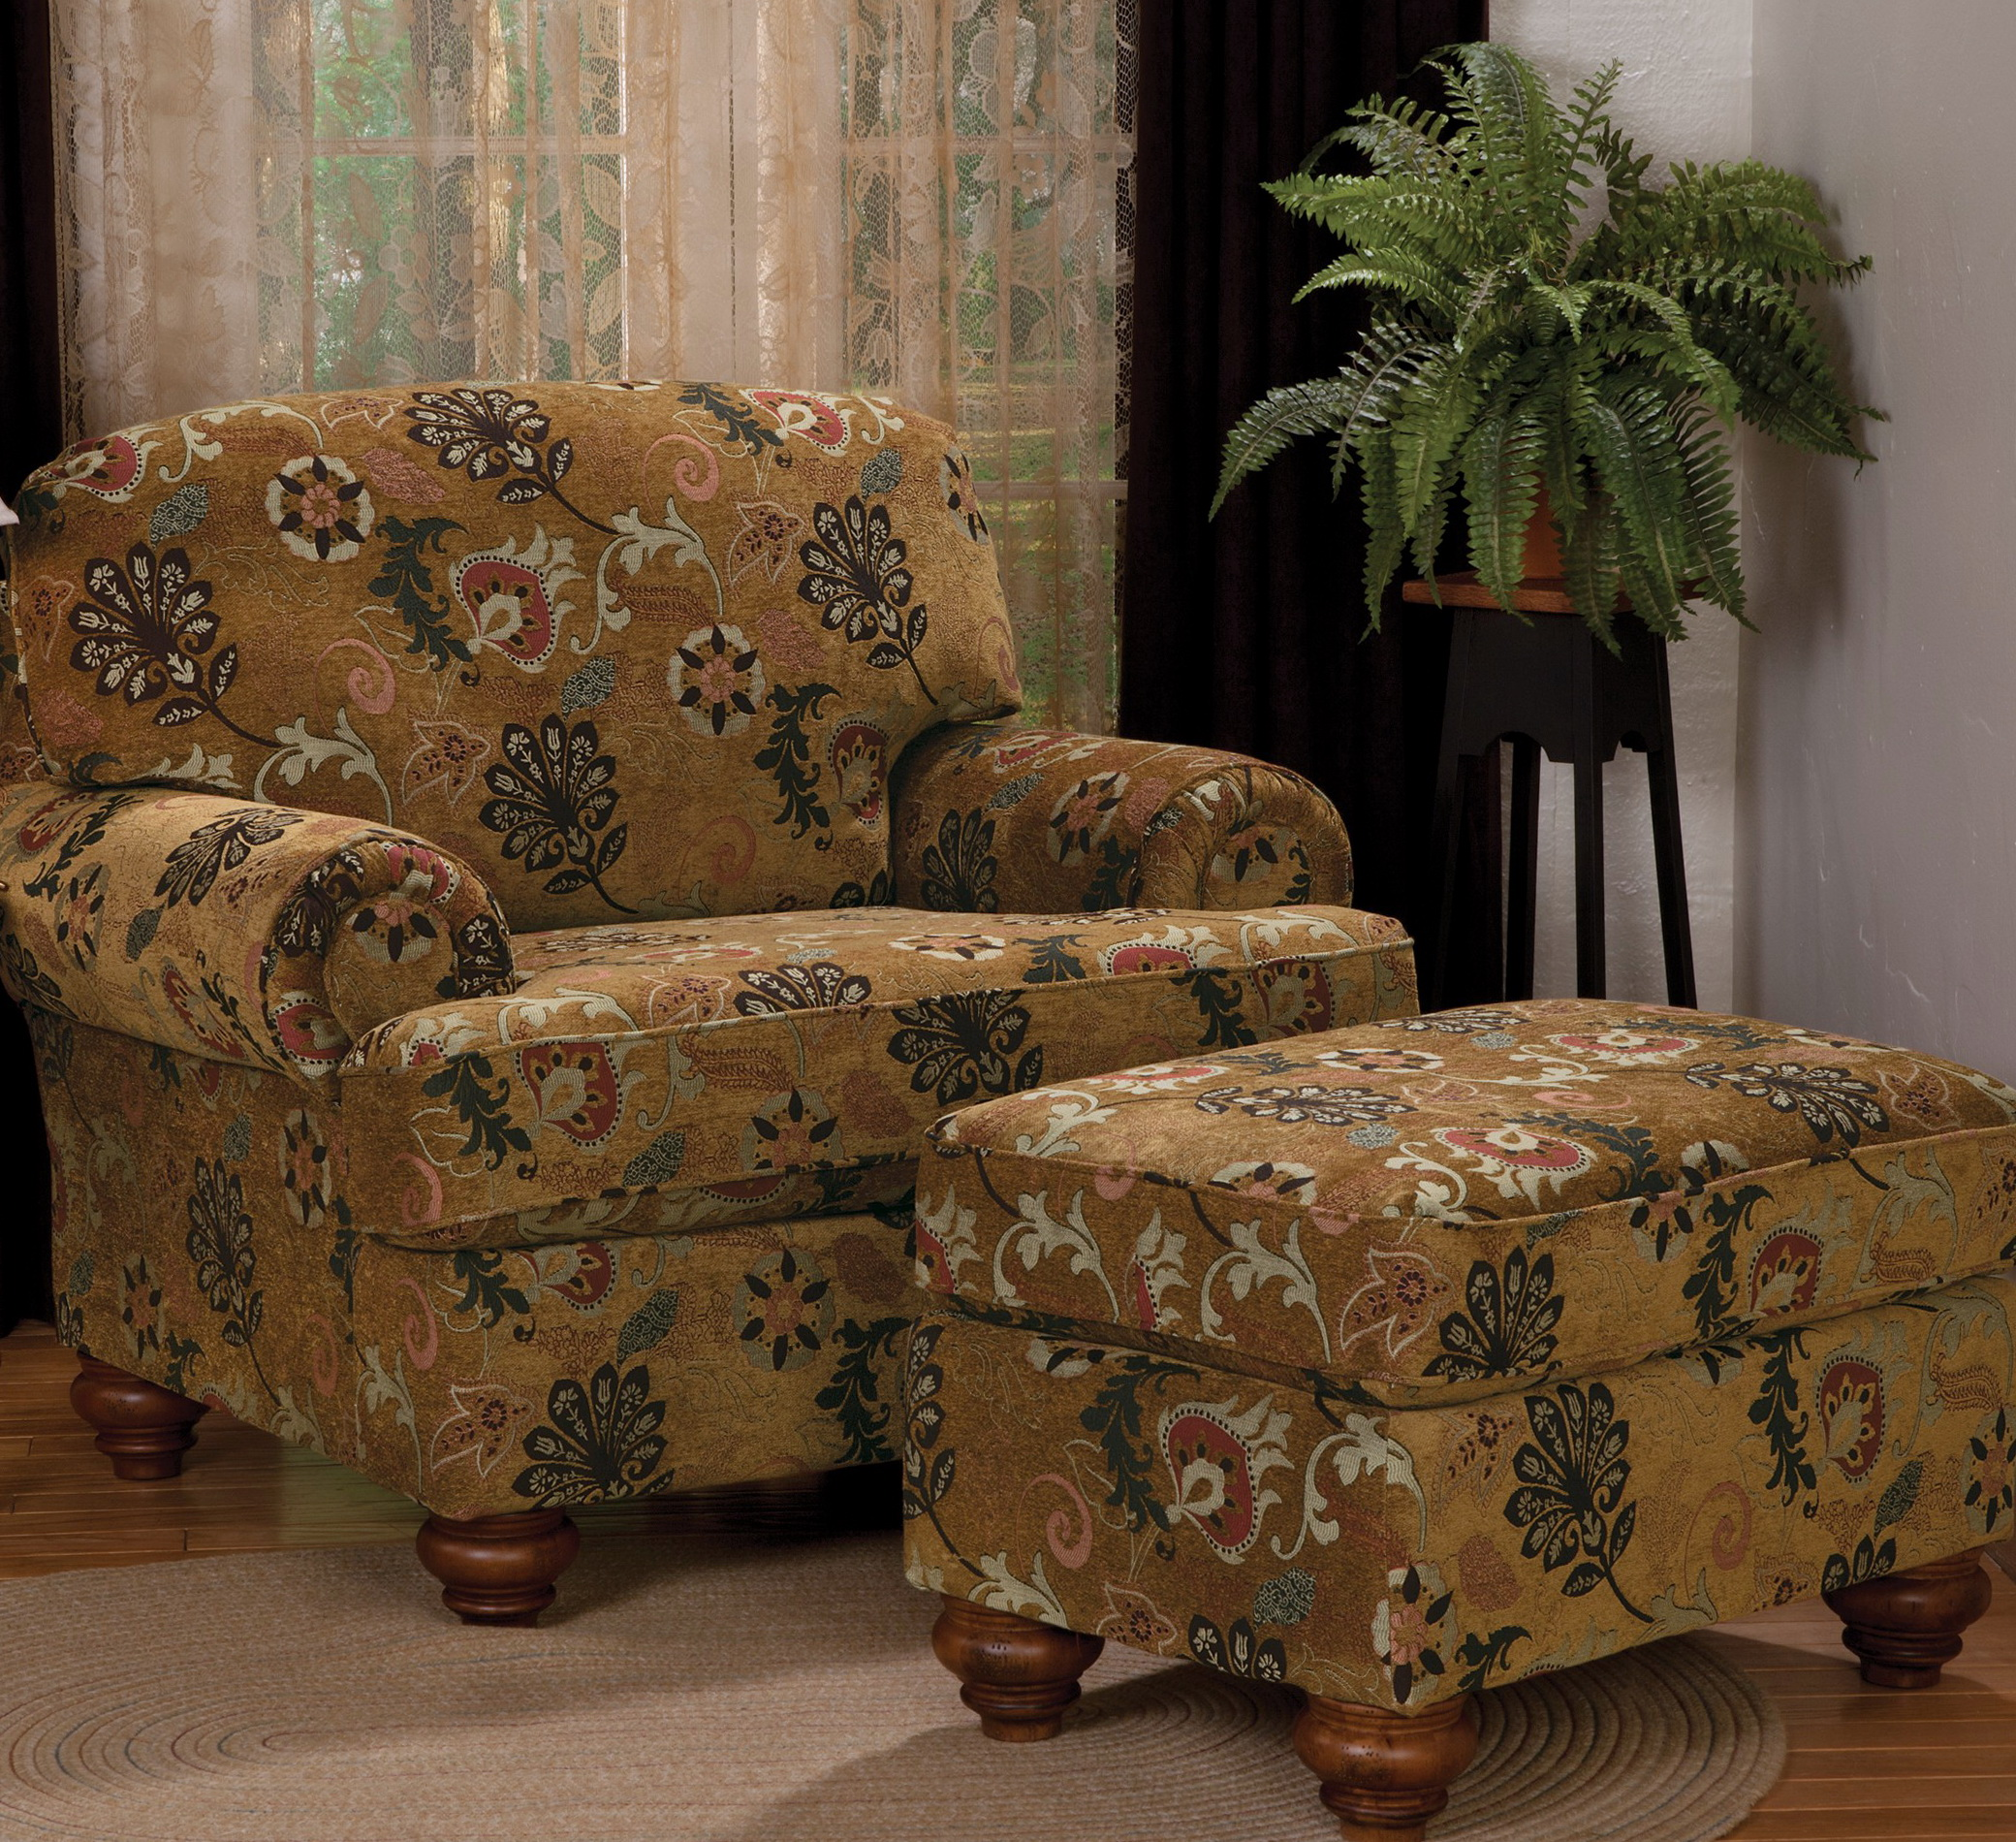 Overstuffed Chair And Ottoman Set Home Design Ideas